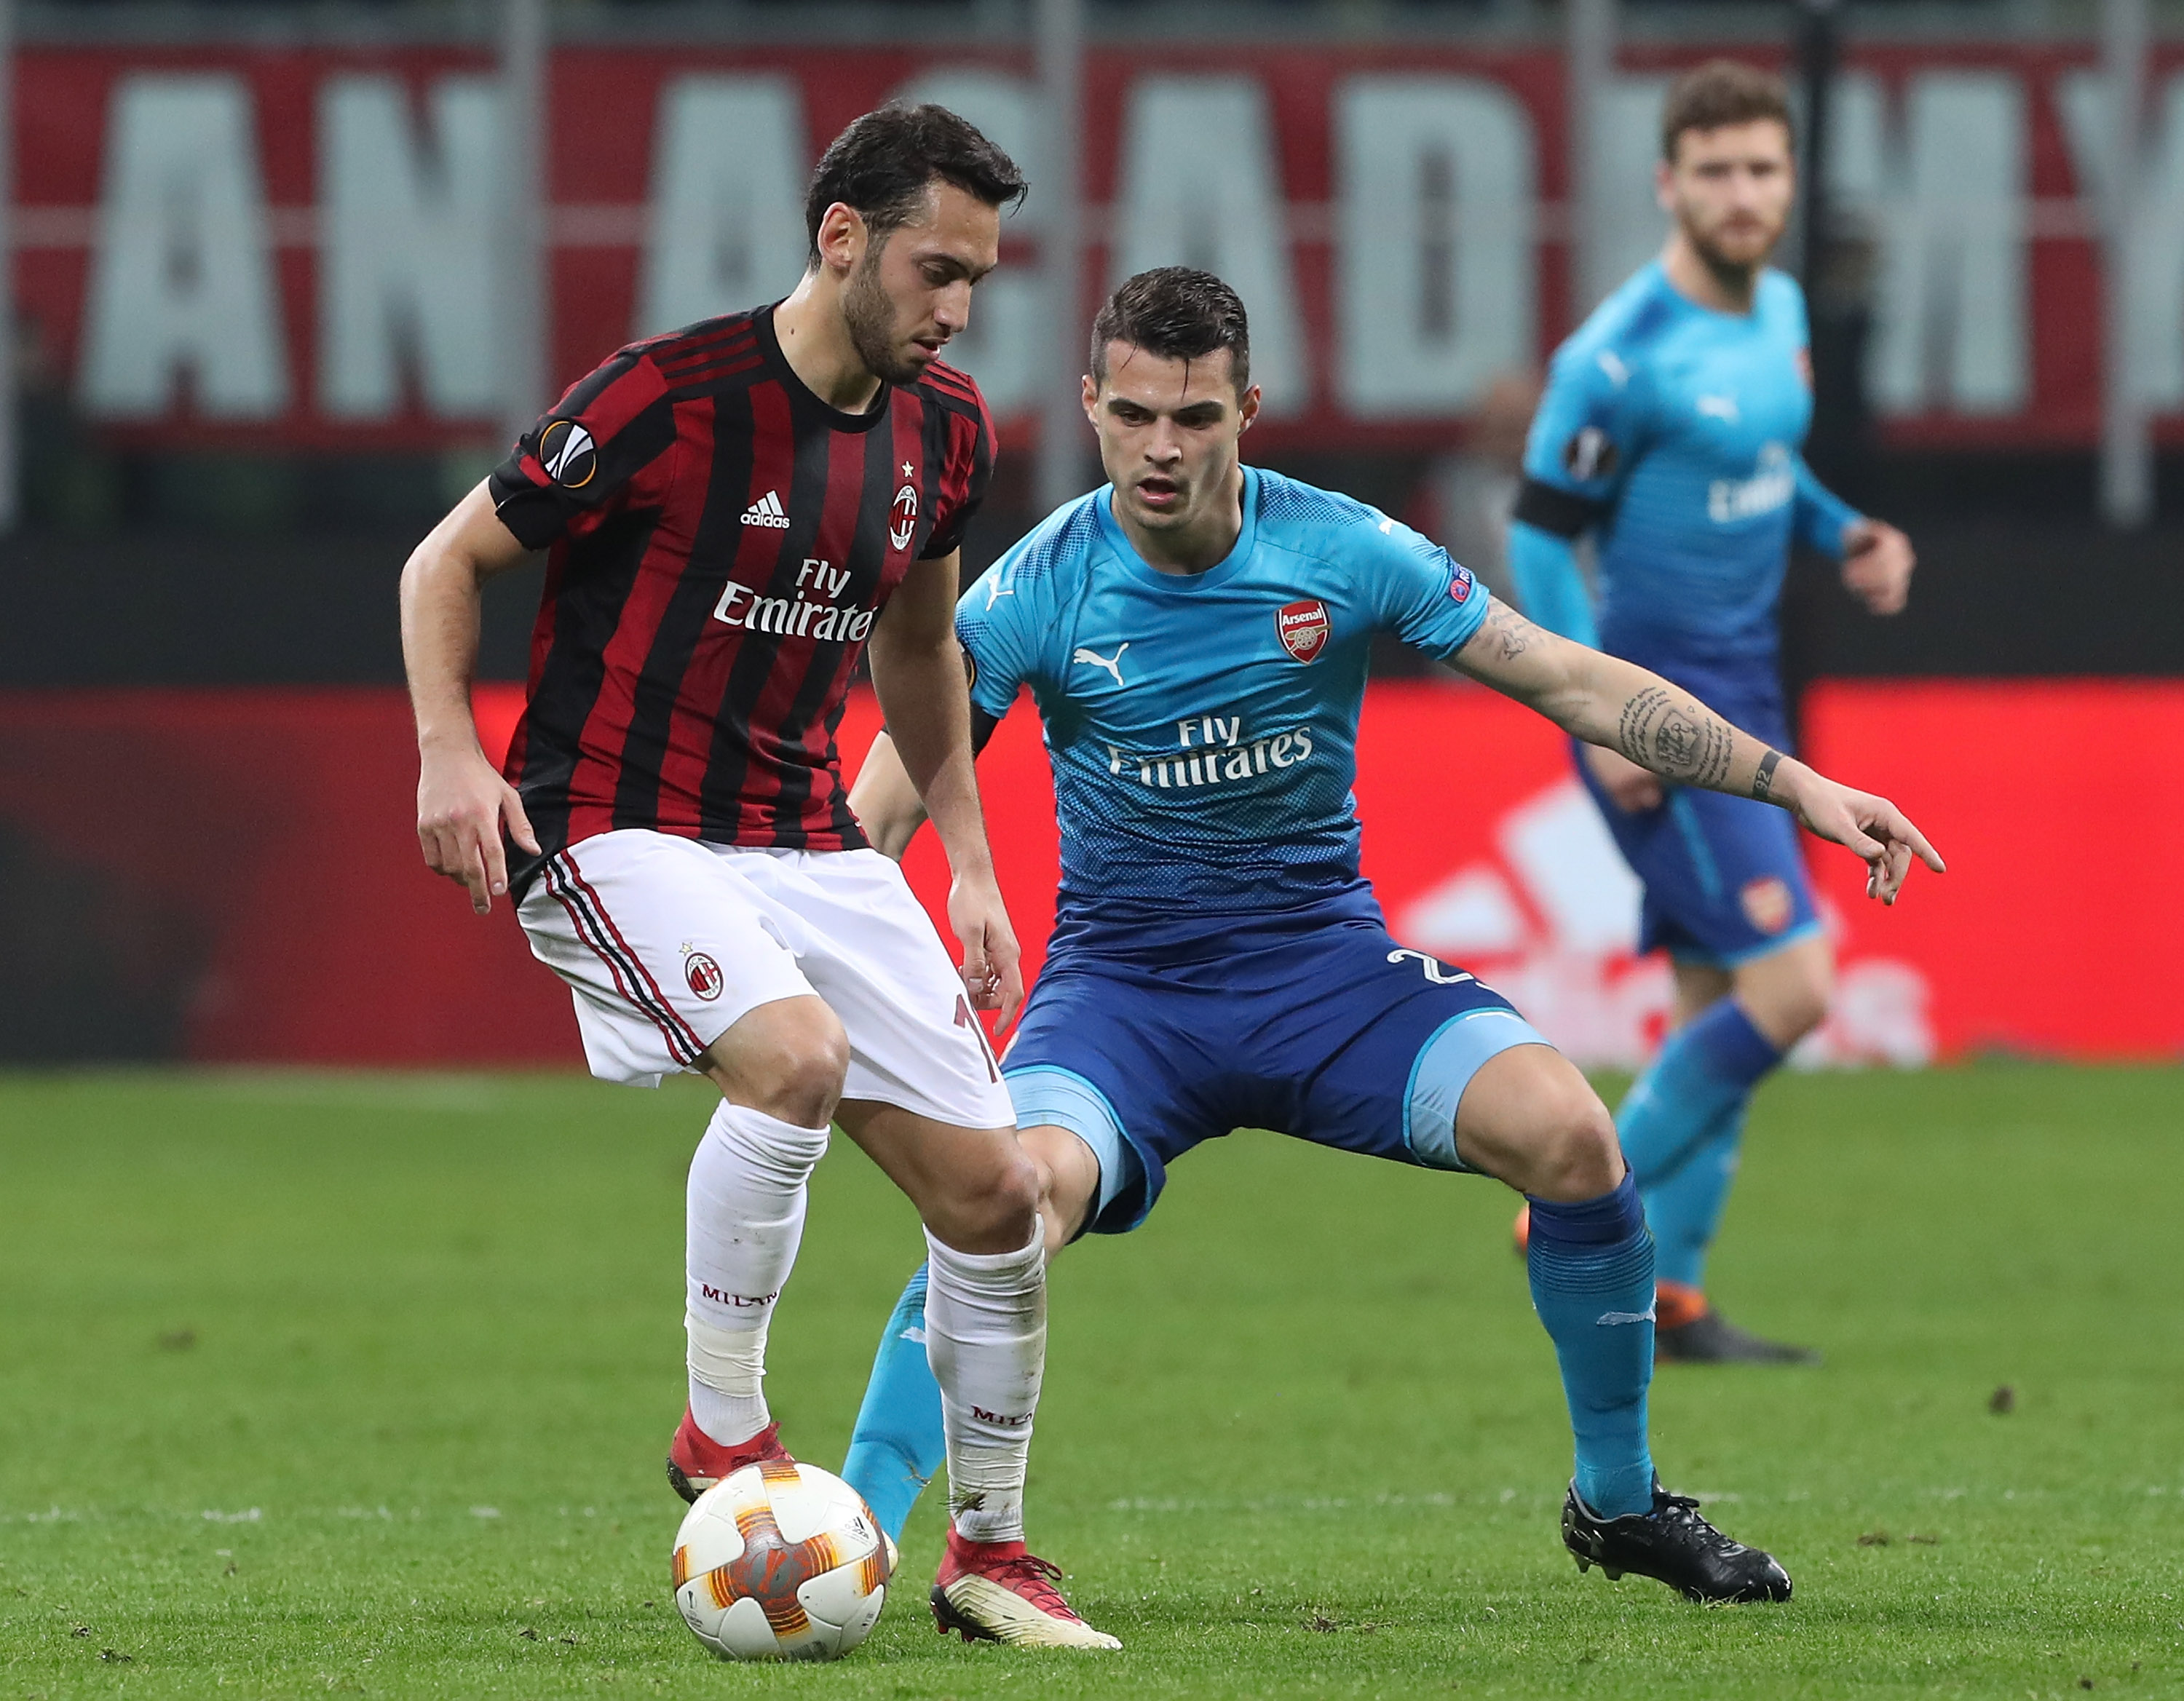 MILAN, ITALY - MARCH 08: Hakan Calhanoglu of AC Milan competes for the ball withGranit Xhaka of Arsenal during UEFA Europa League Round of 16 match between AC Milan and Arsenal at the San Siro on March 8, 2018 in Milan, Italy. (Photo by Marco Luzzani/Getty Images)